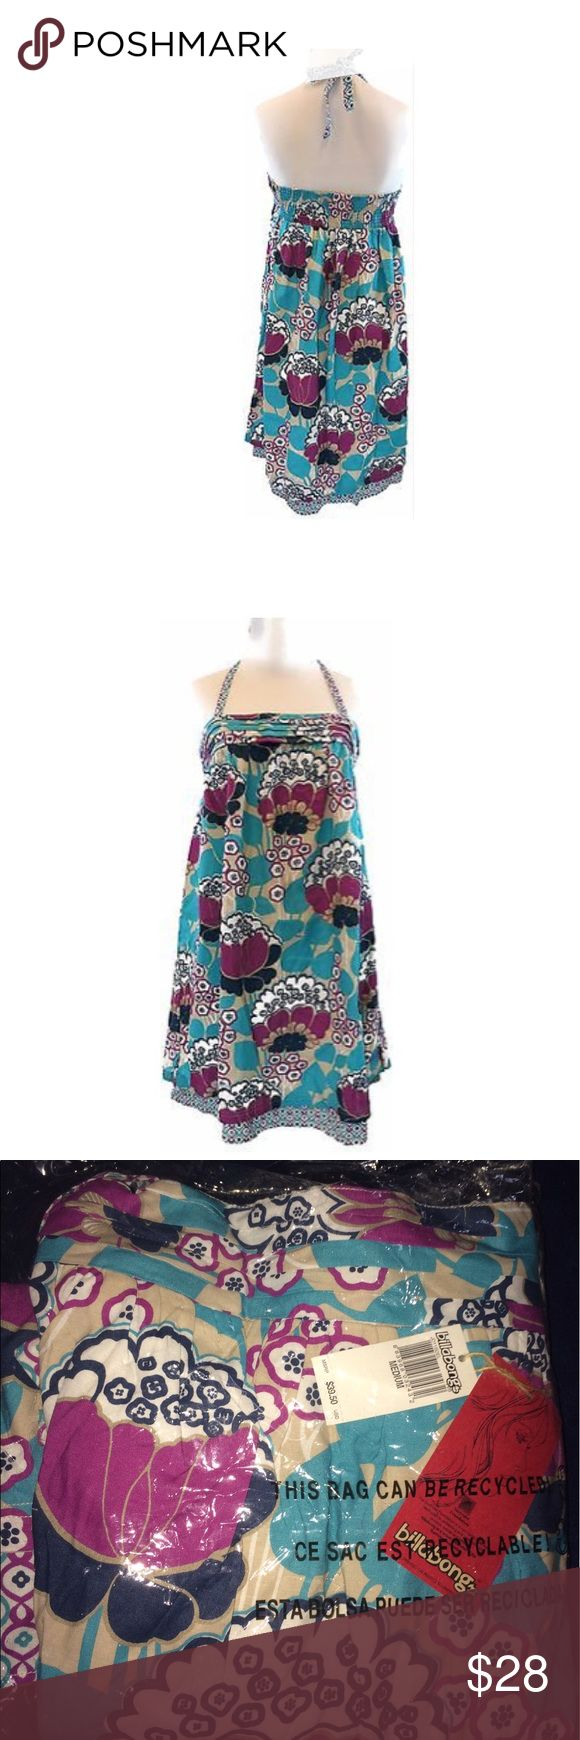 Billabong Floral Halter Dress Cute comfortable billabong floral halter dresssize: mcondition: new with tagscare: machine wash/tumble dryclosure: tiecolor:    Material :55%cotton, 45% viscose Occasion :Summer/Beach Dress Length :Above Knee, Mini Sleeve Style :Halter Pattern :Floral Billabong Dresses Mini